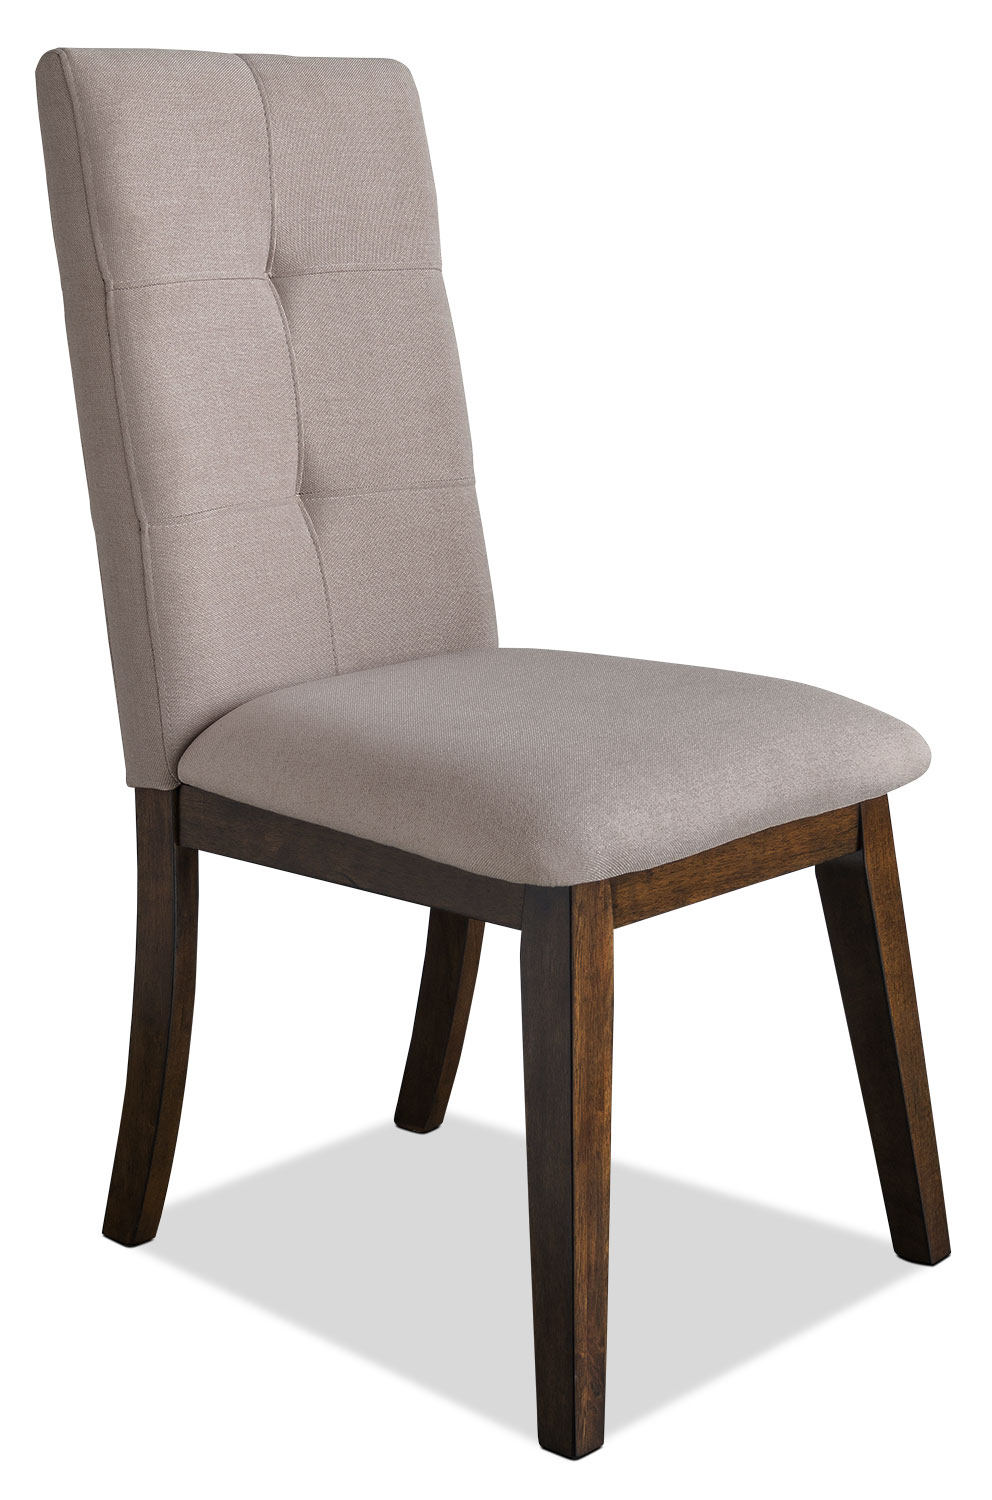 Chelsea fabric dining chair beige united furniture for Fabric chairs dining room